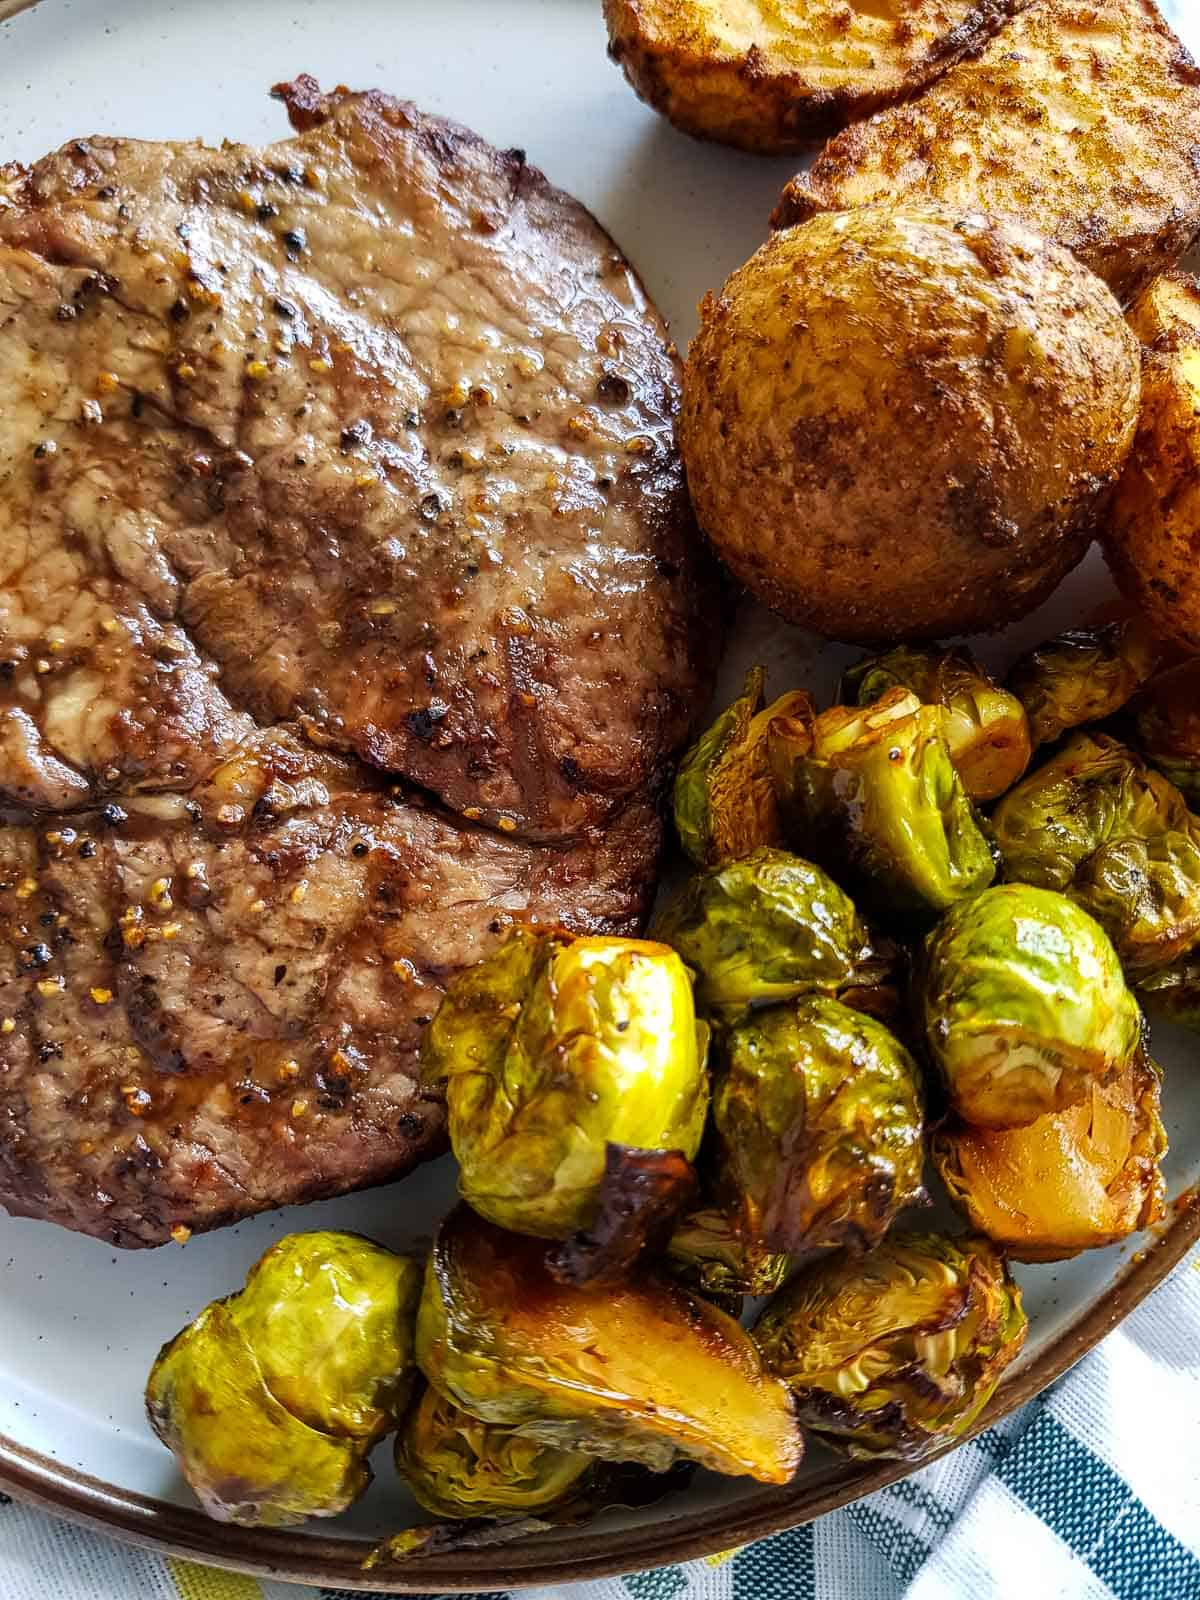 Brussels sprouts on a plate with steak and potatoes.